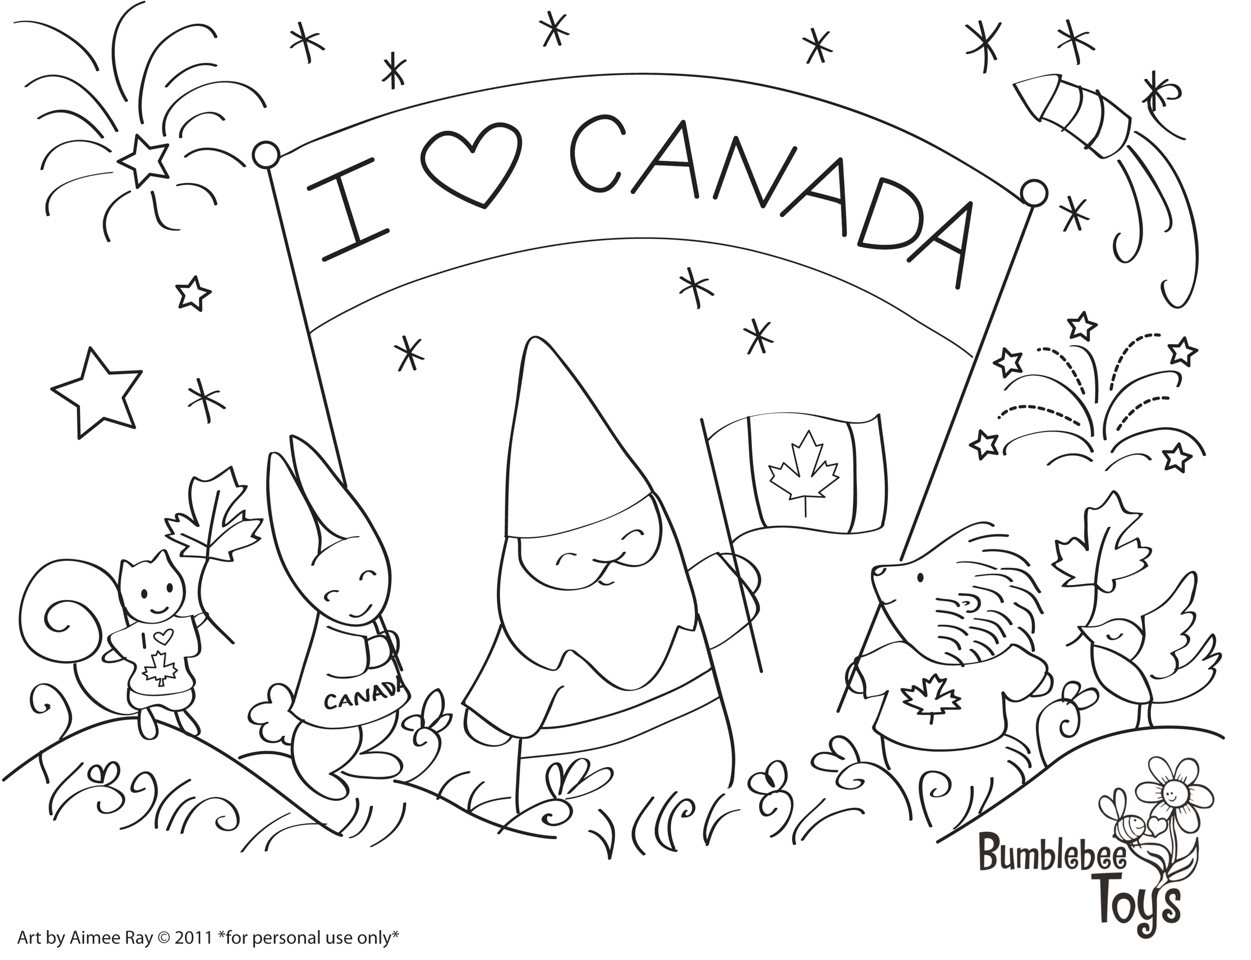 Coloring: Canada Coloring Pages To Download And Print For Free